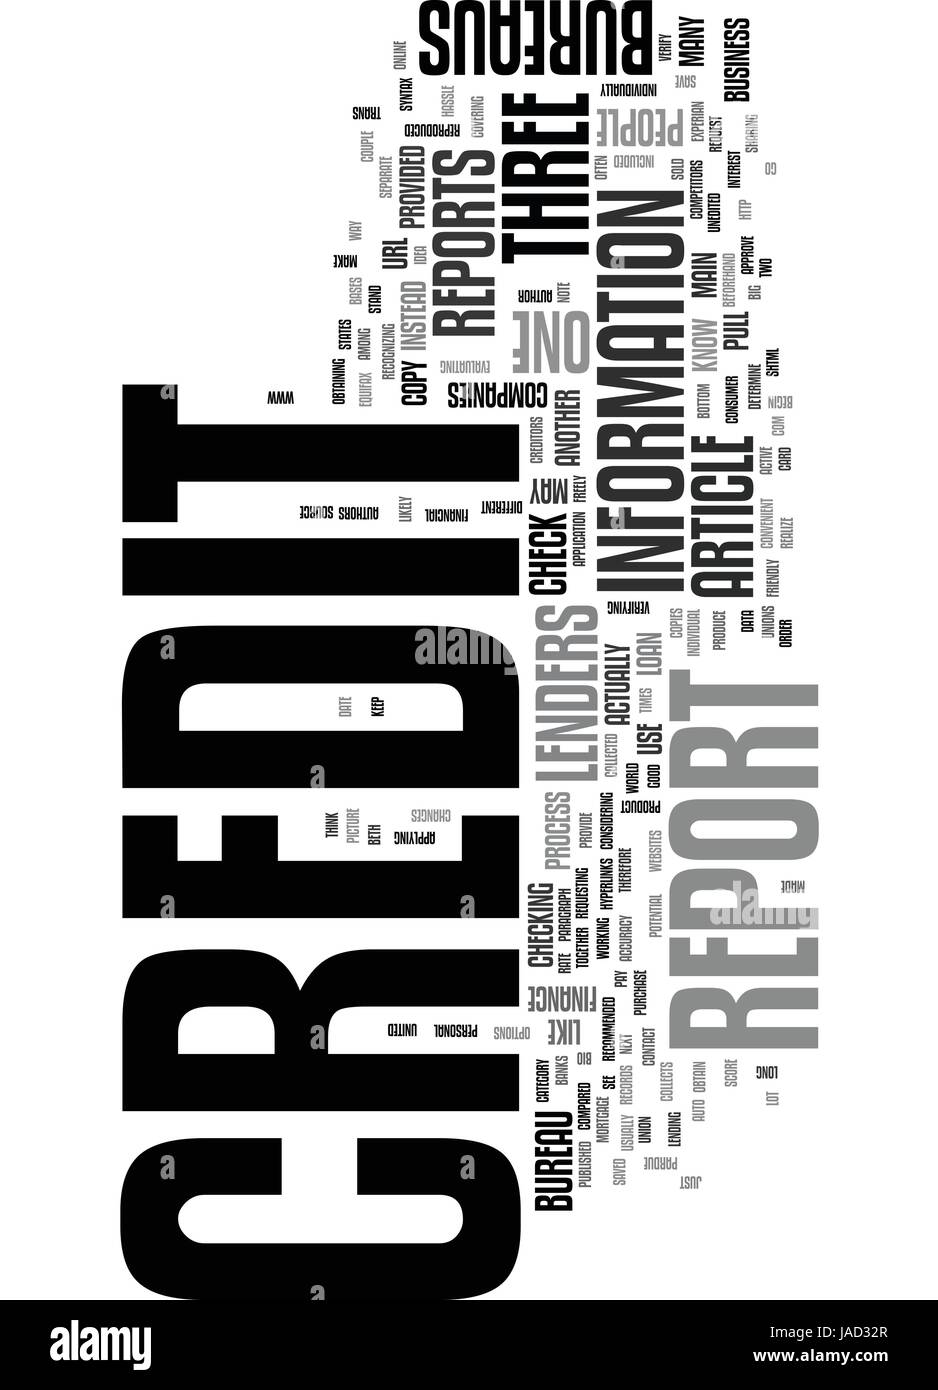 WHICH CREDIT BUREAU SHOULD I USE TO CHECK MY CREDIT REPORT TEXT WORD CLOUD CONCEPT - Stock Vector